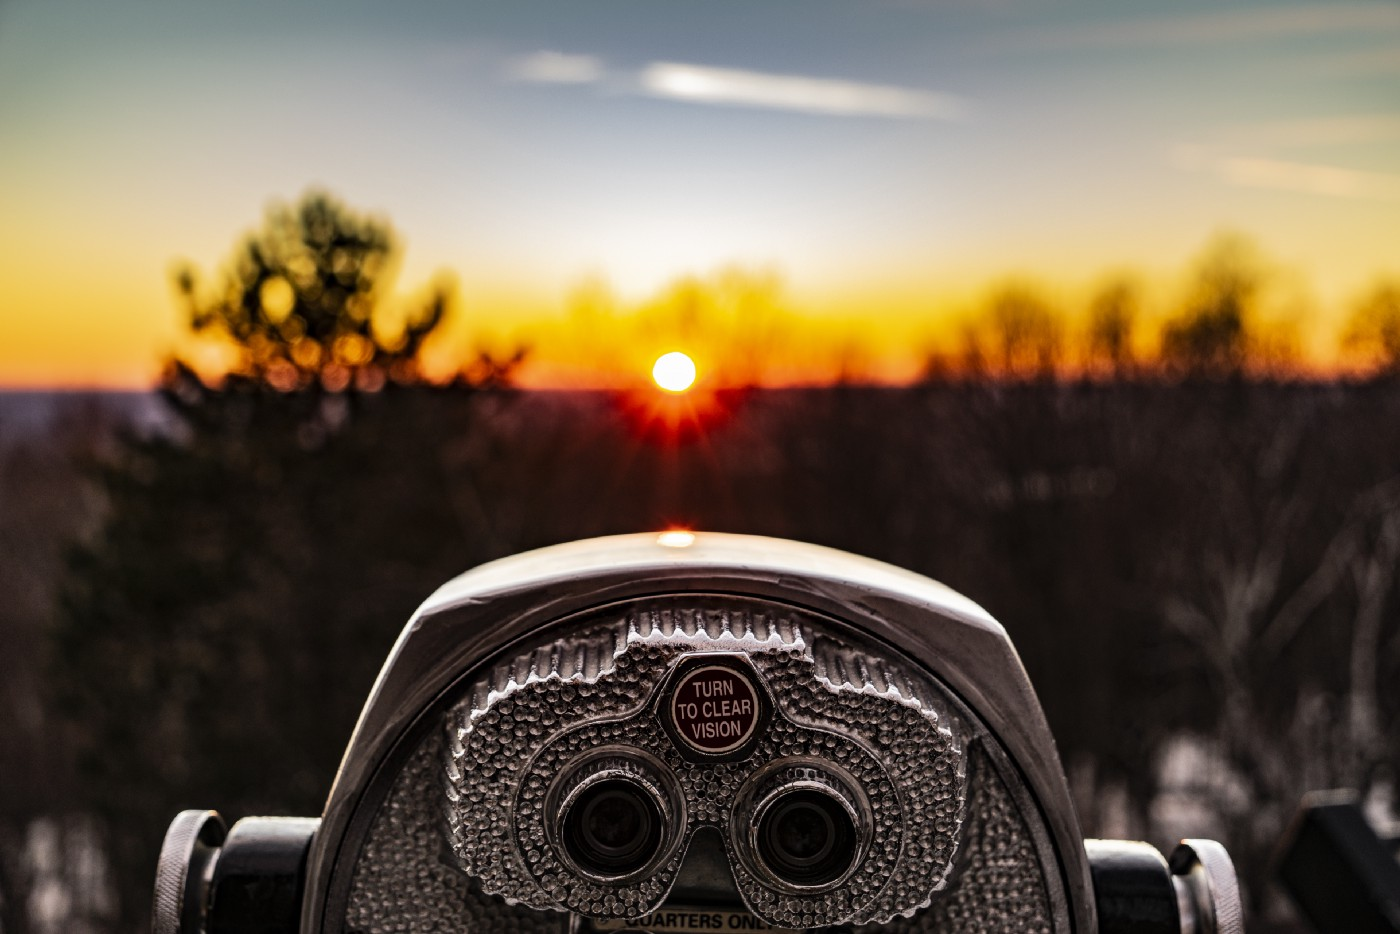 """Binoculars looking towards the light with """"turn to clear vision"""" option"""